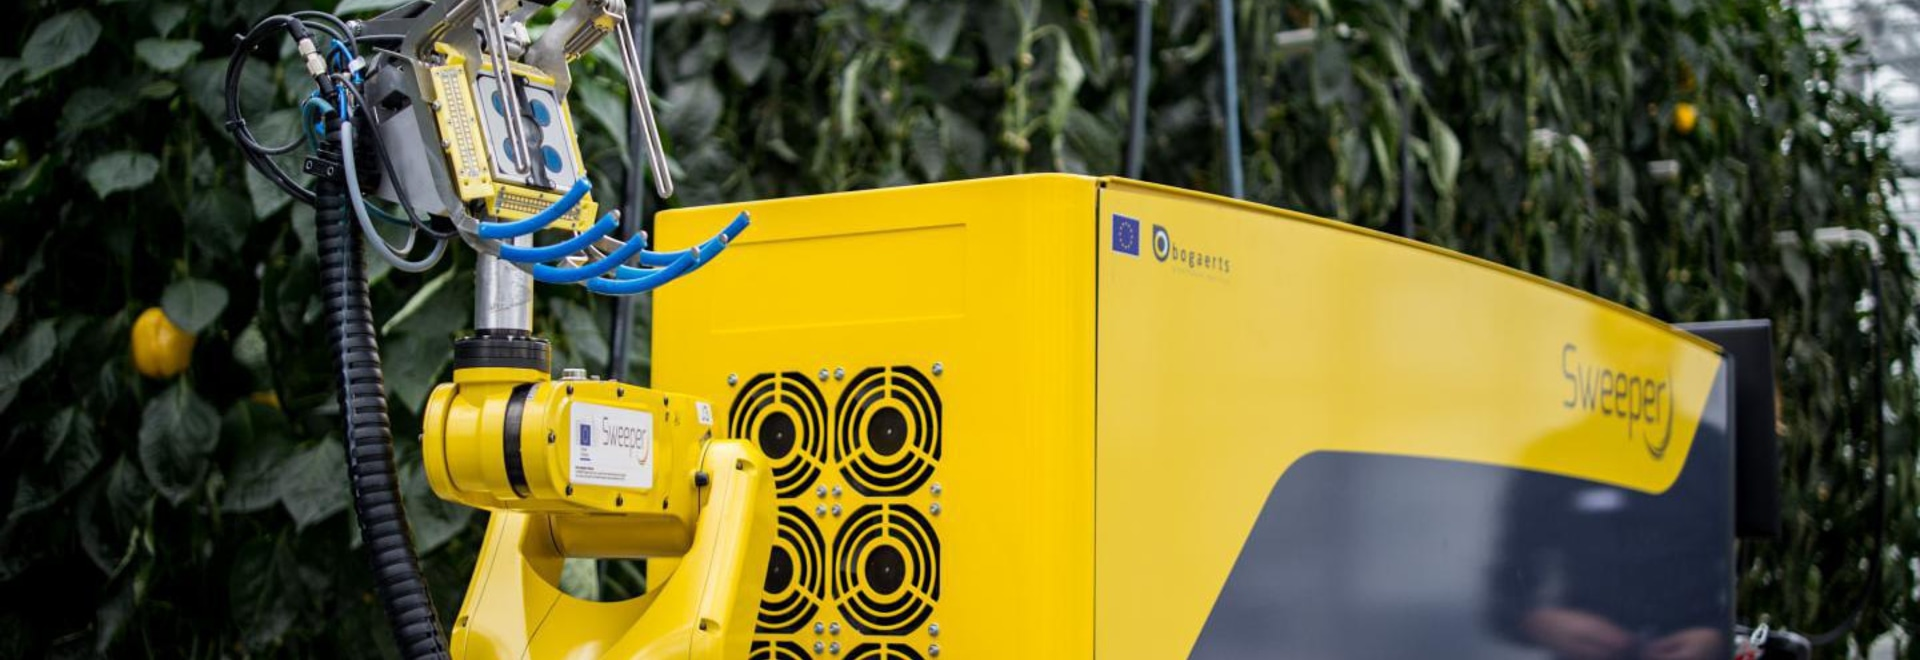 Harvesting robot picks a peck of peppers and more